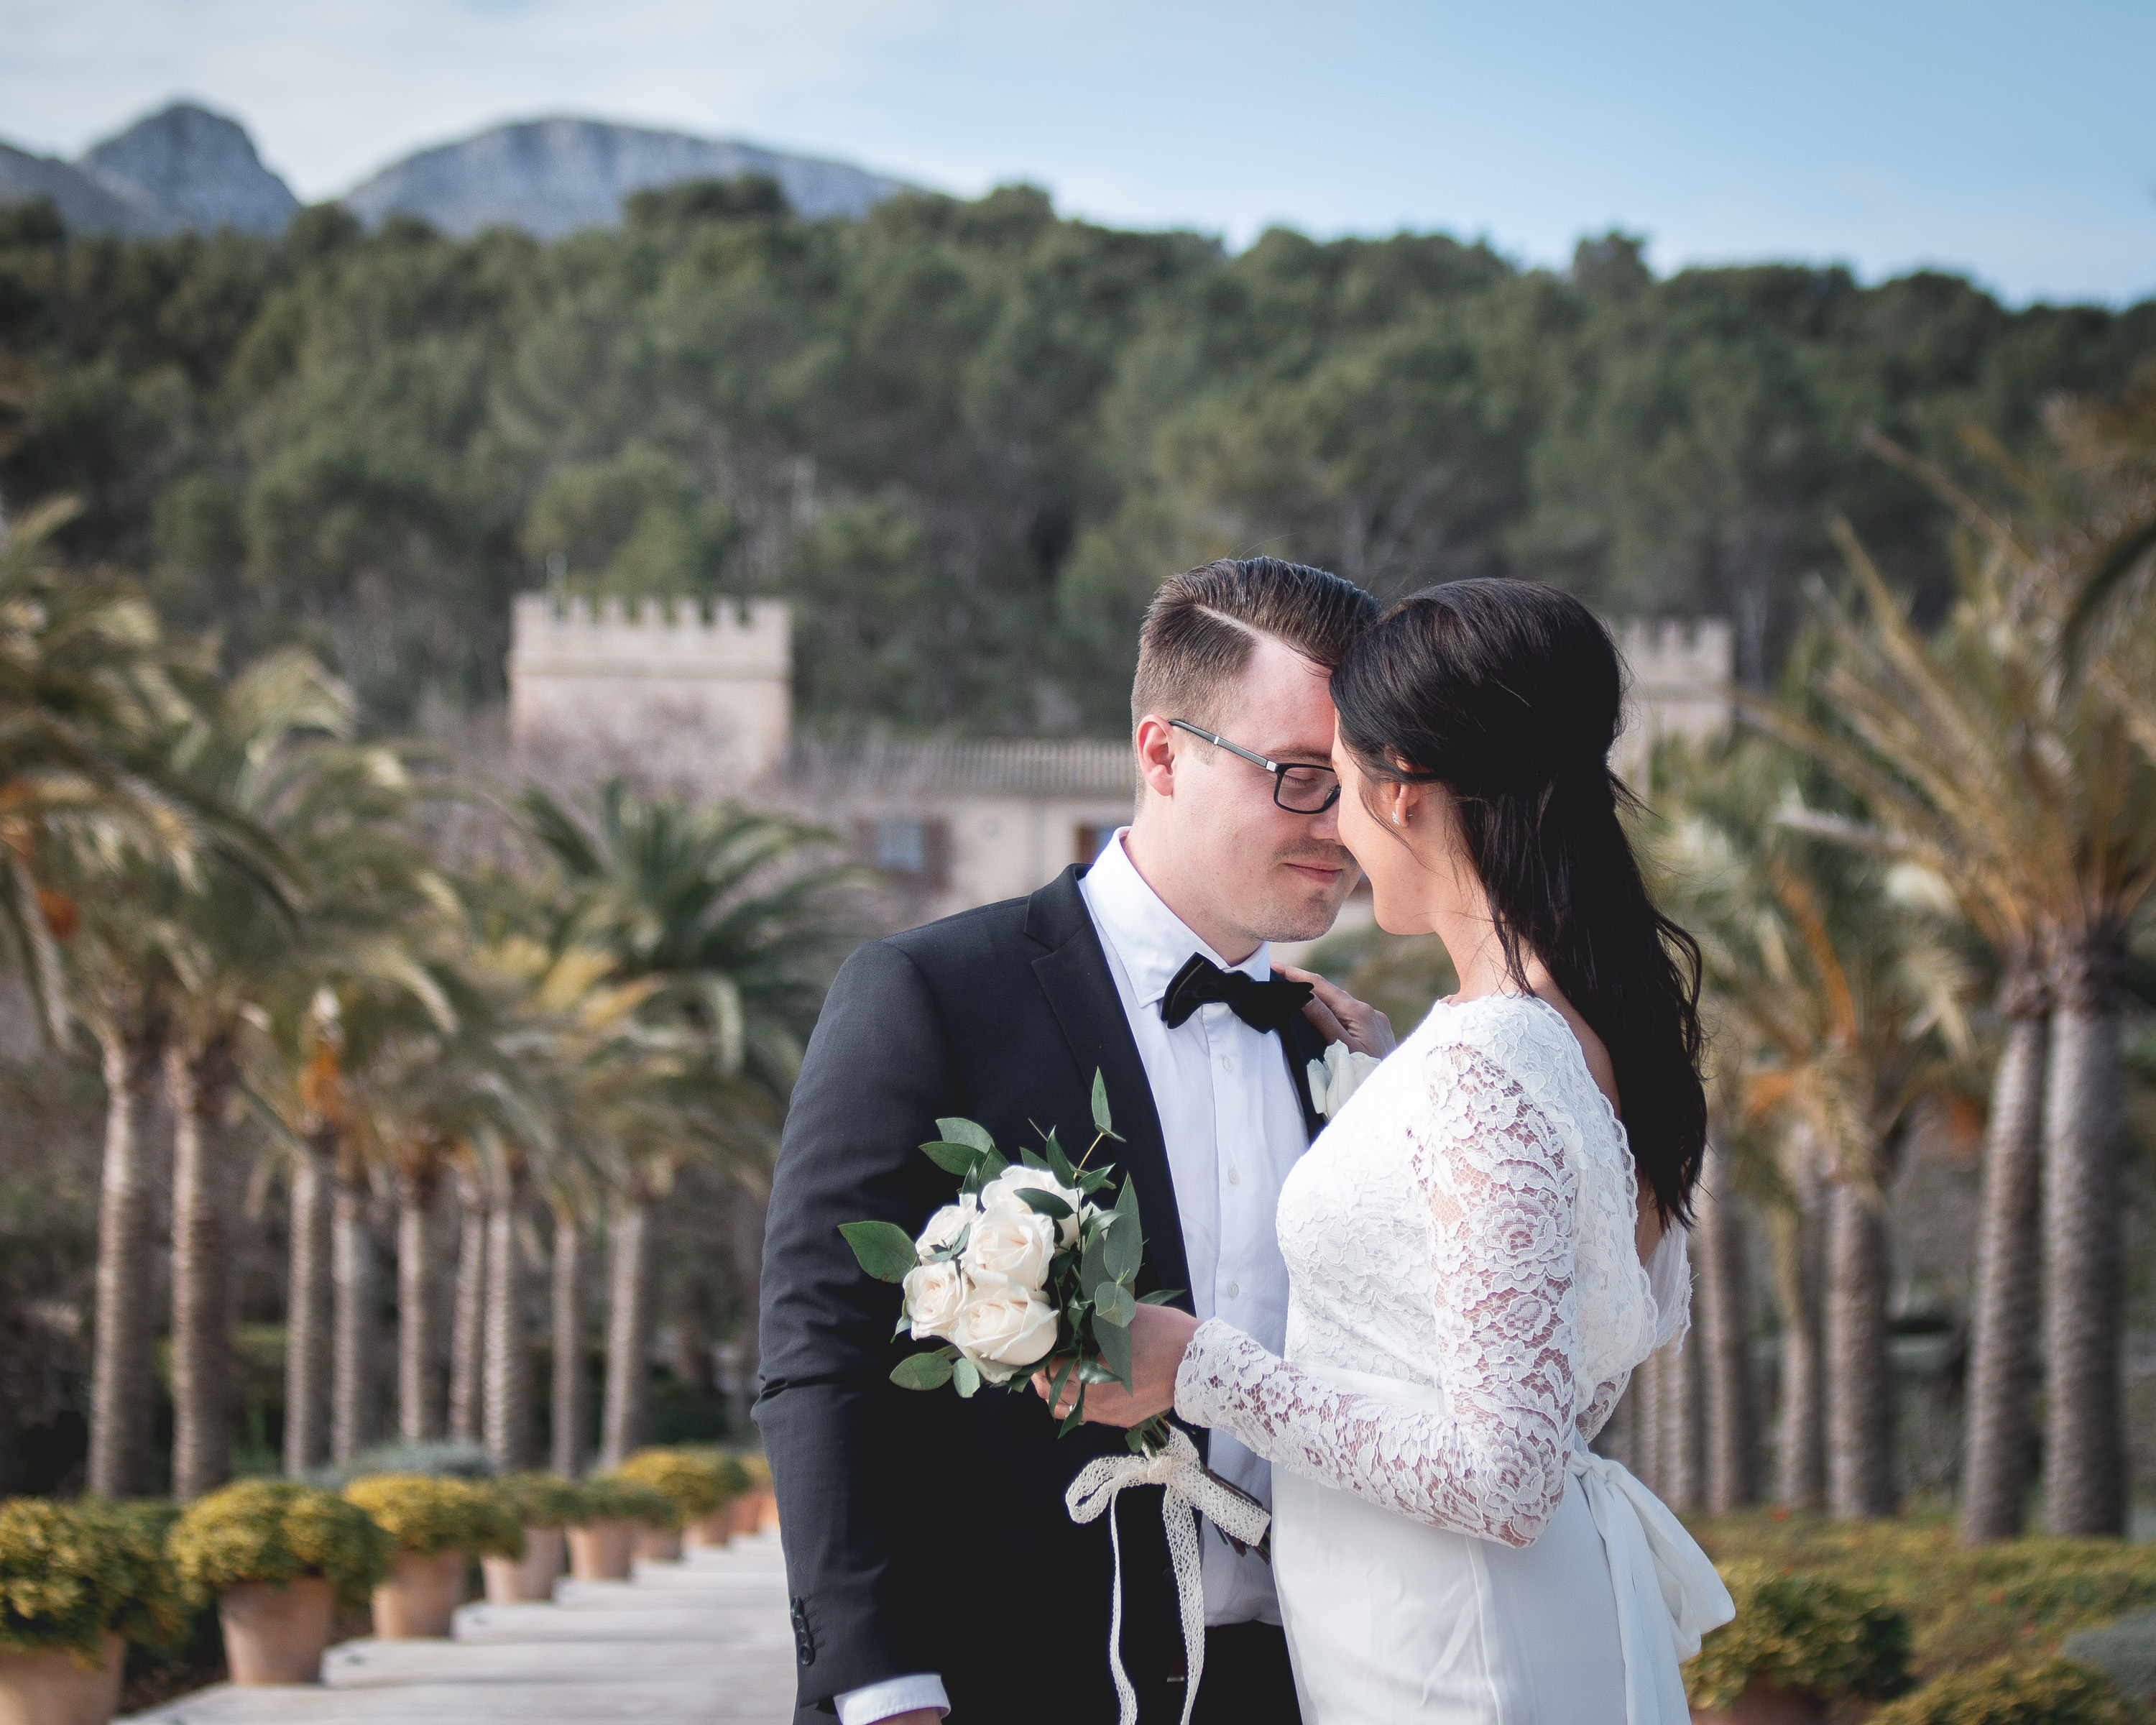 Behind the scenes: Wedding photography in Palma and Son Claret